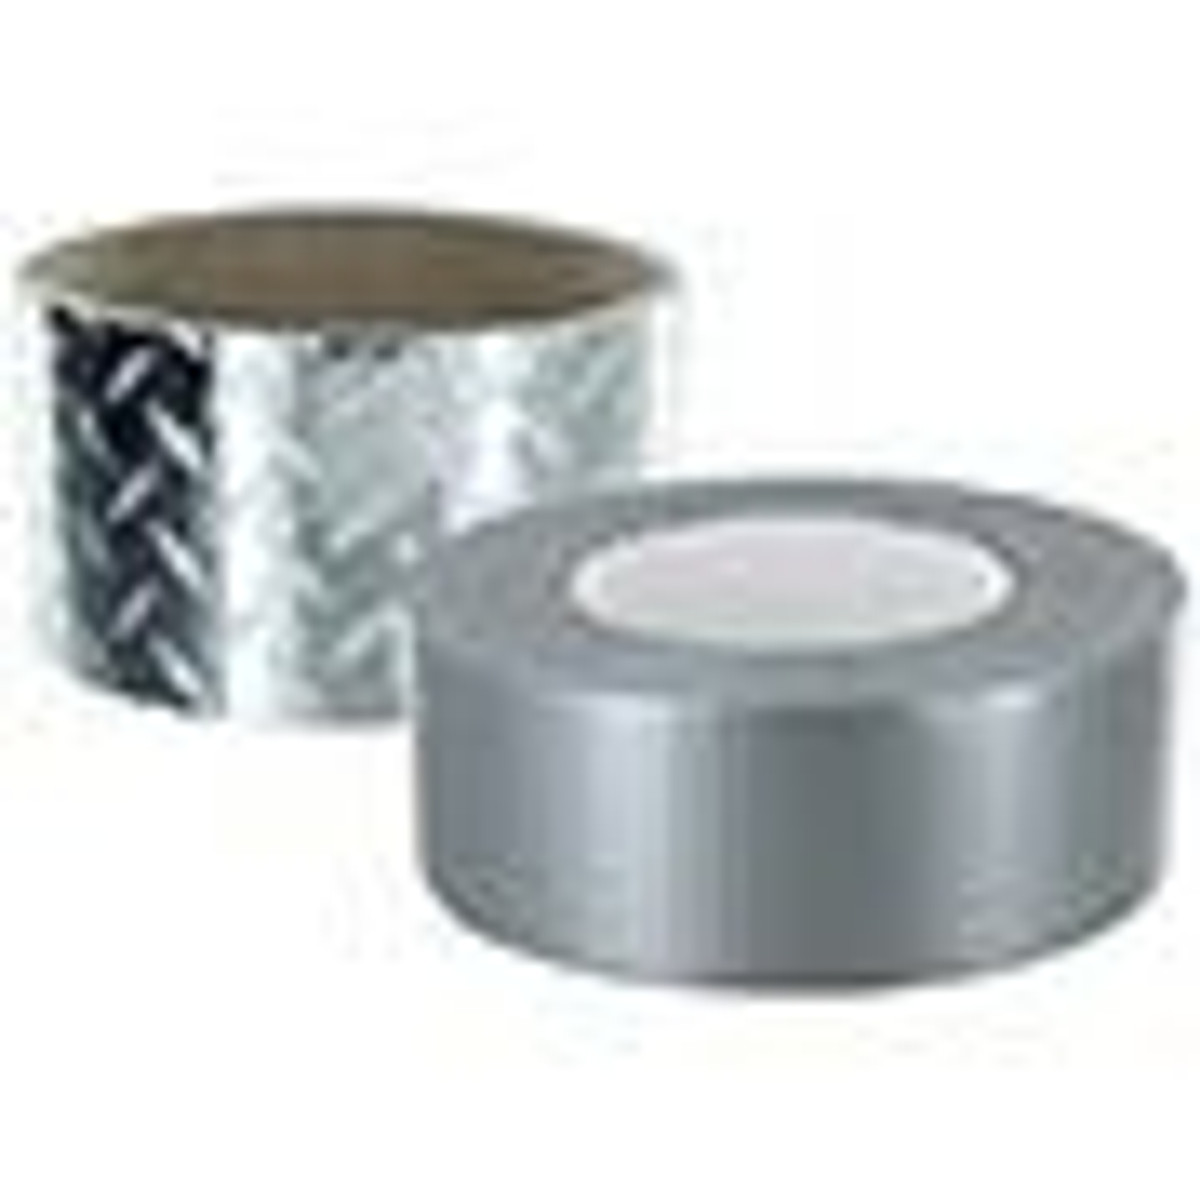 Rugged Blue Duct Tape